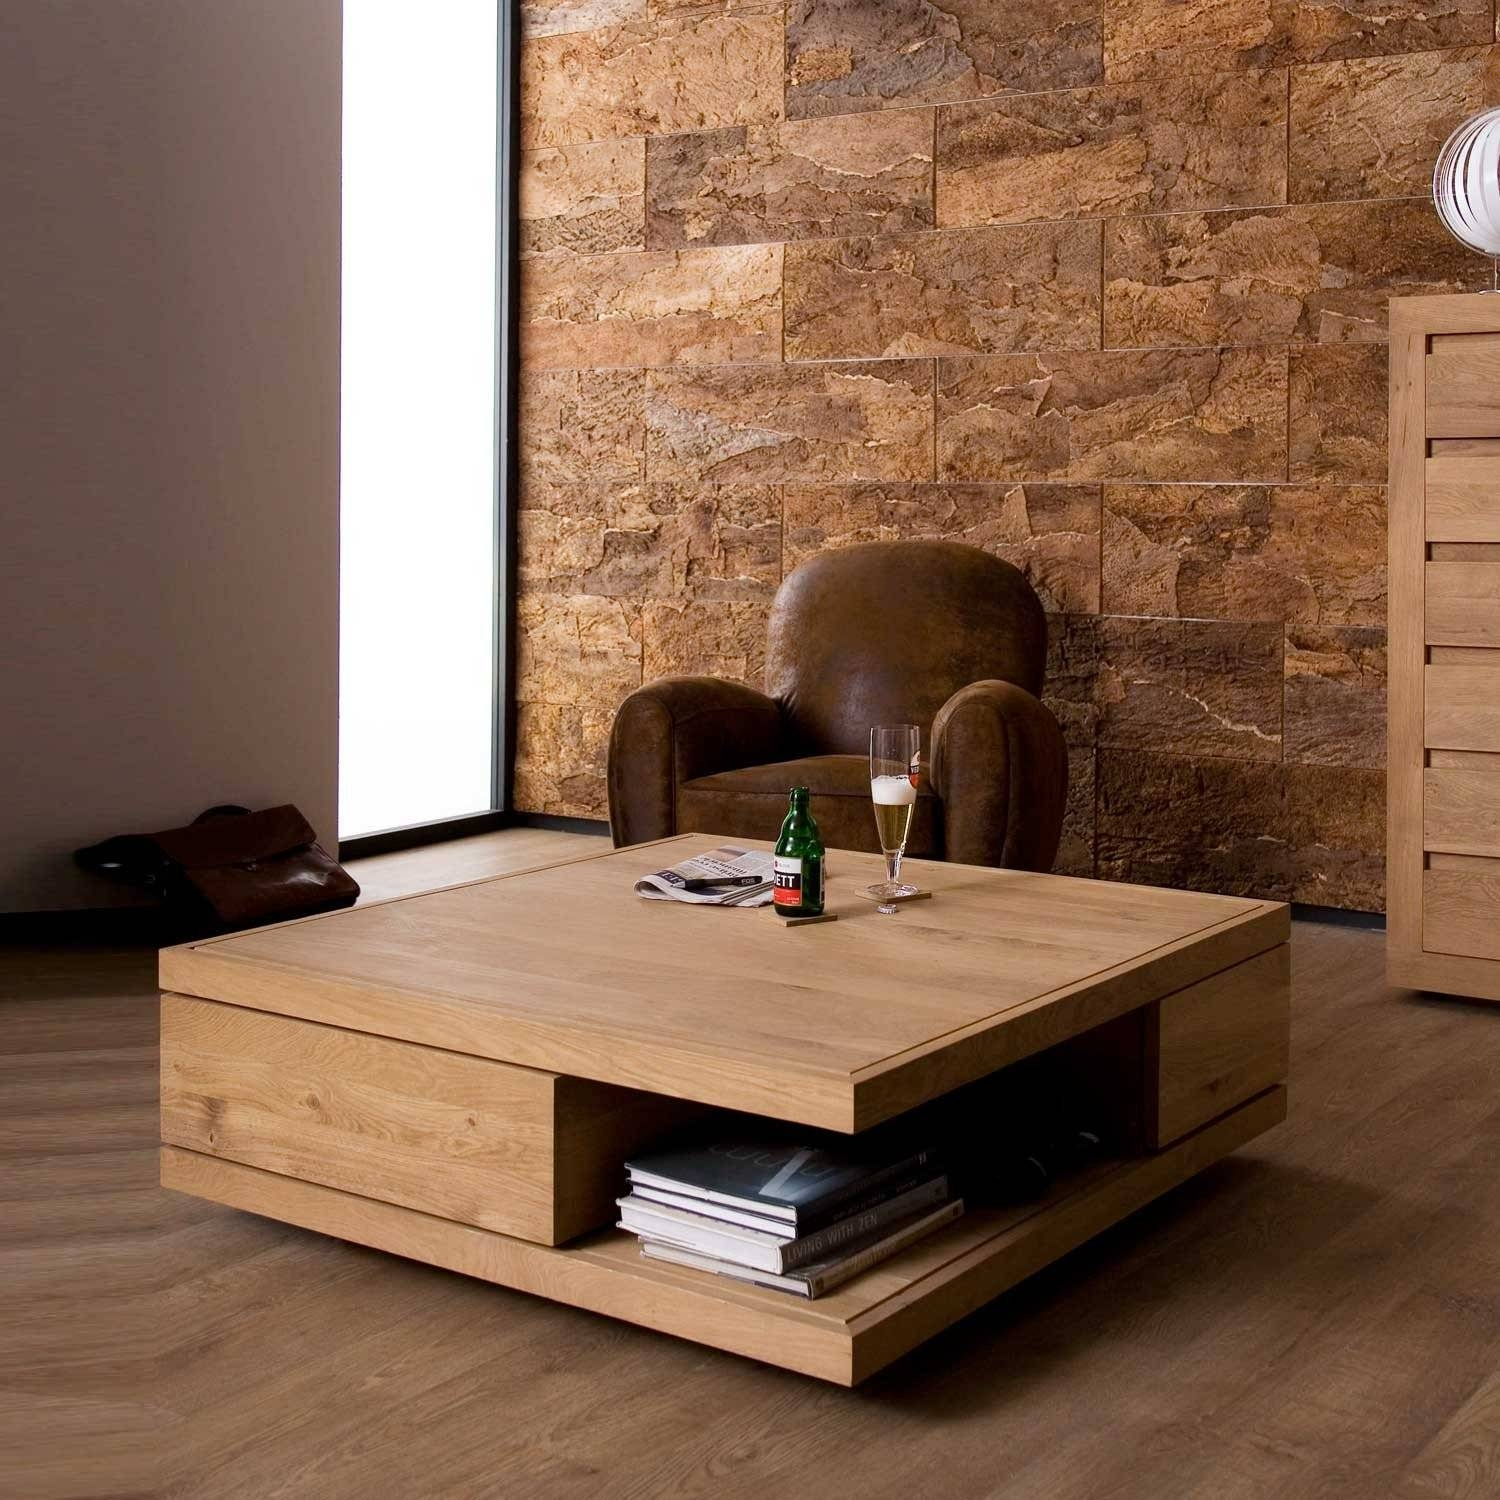 Ethnicraft Flat Oak Coffee Tables | Solid Wood Furniture Intended For Oak Coffee Table With Storage (View 3 of 15)